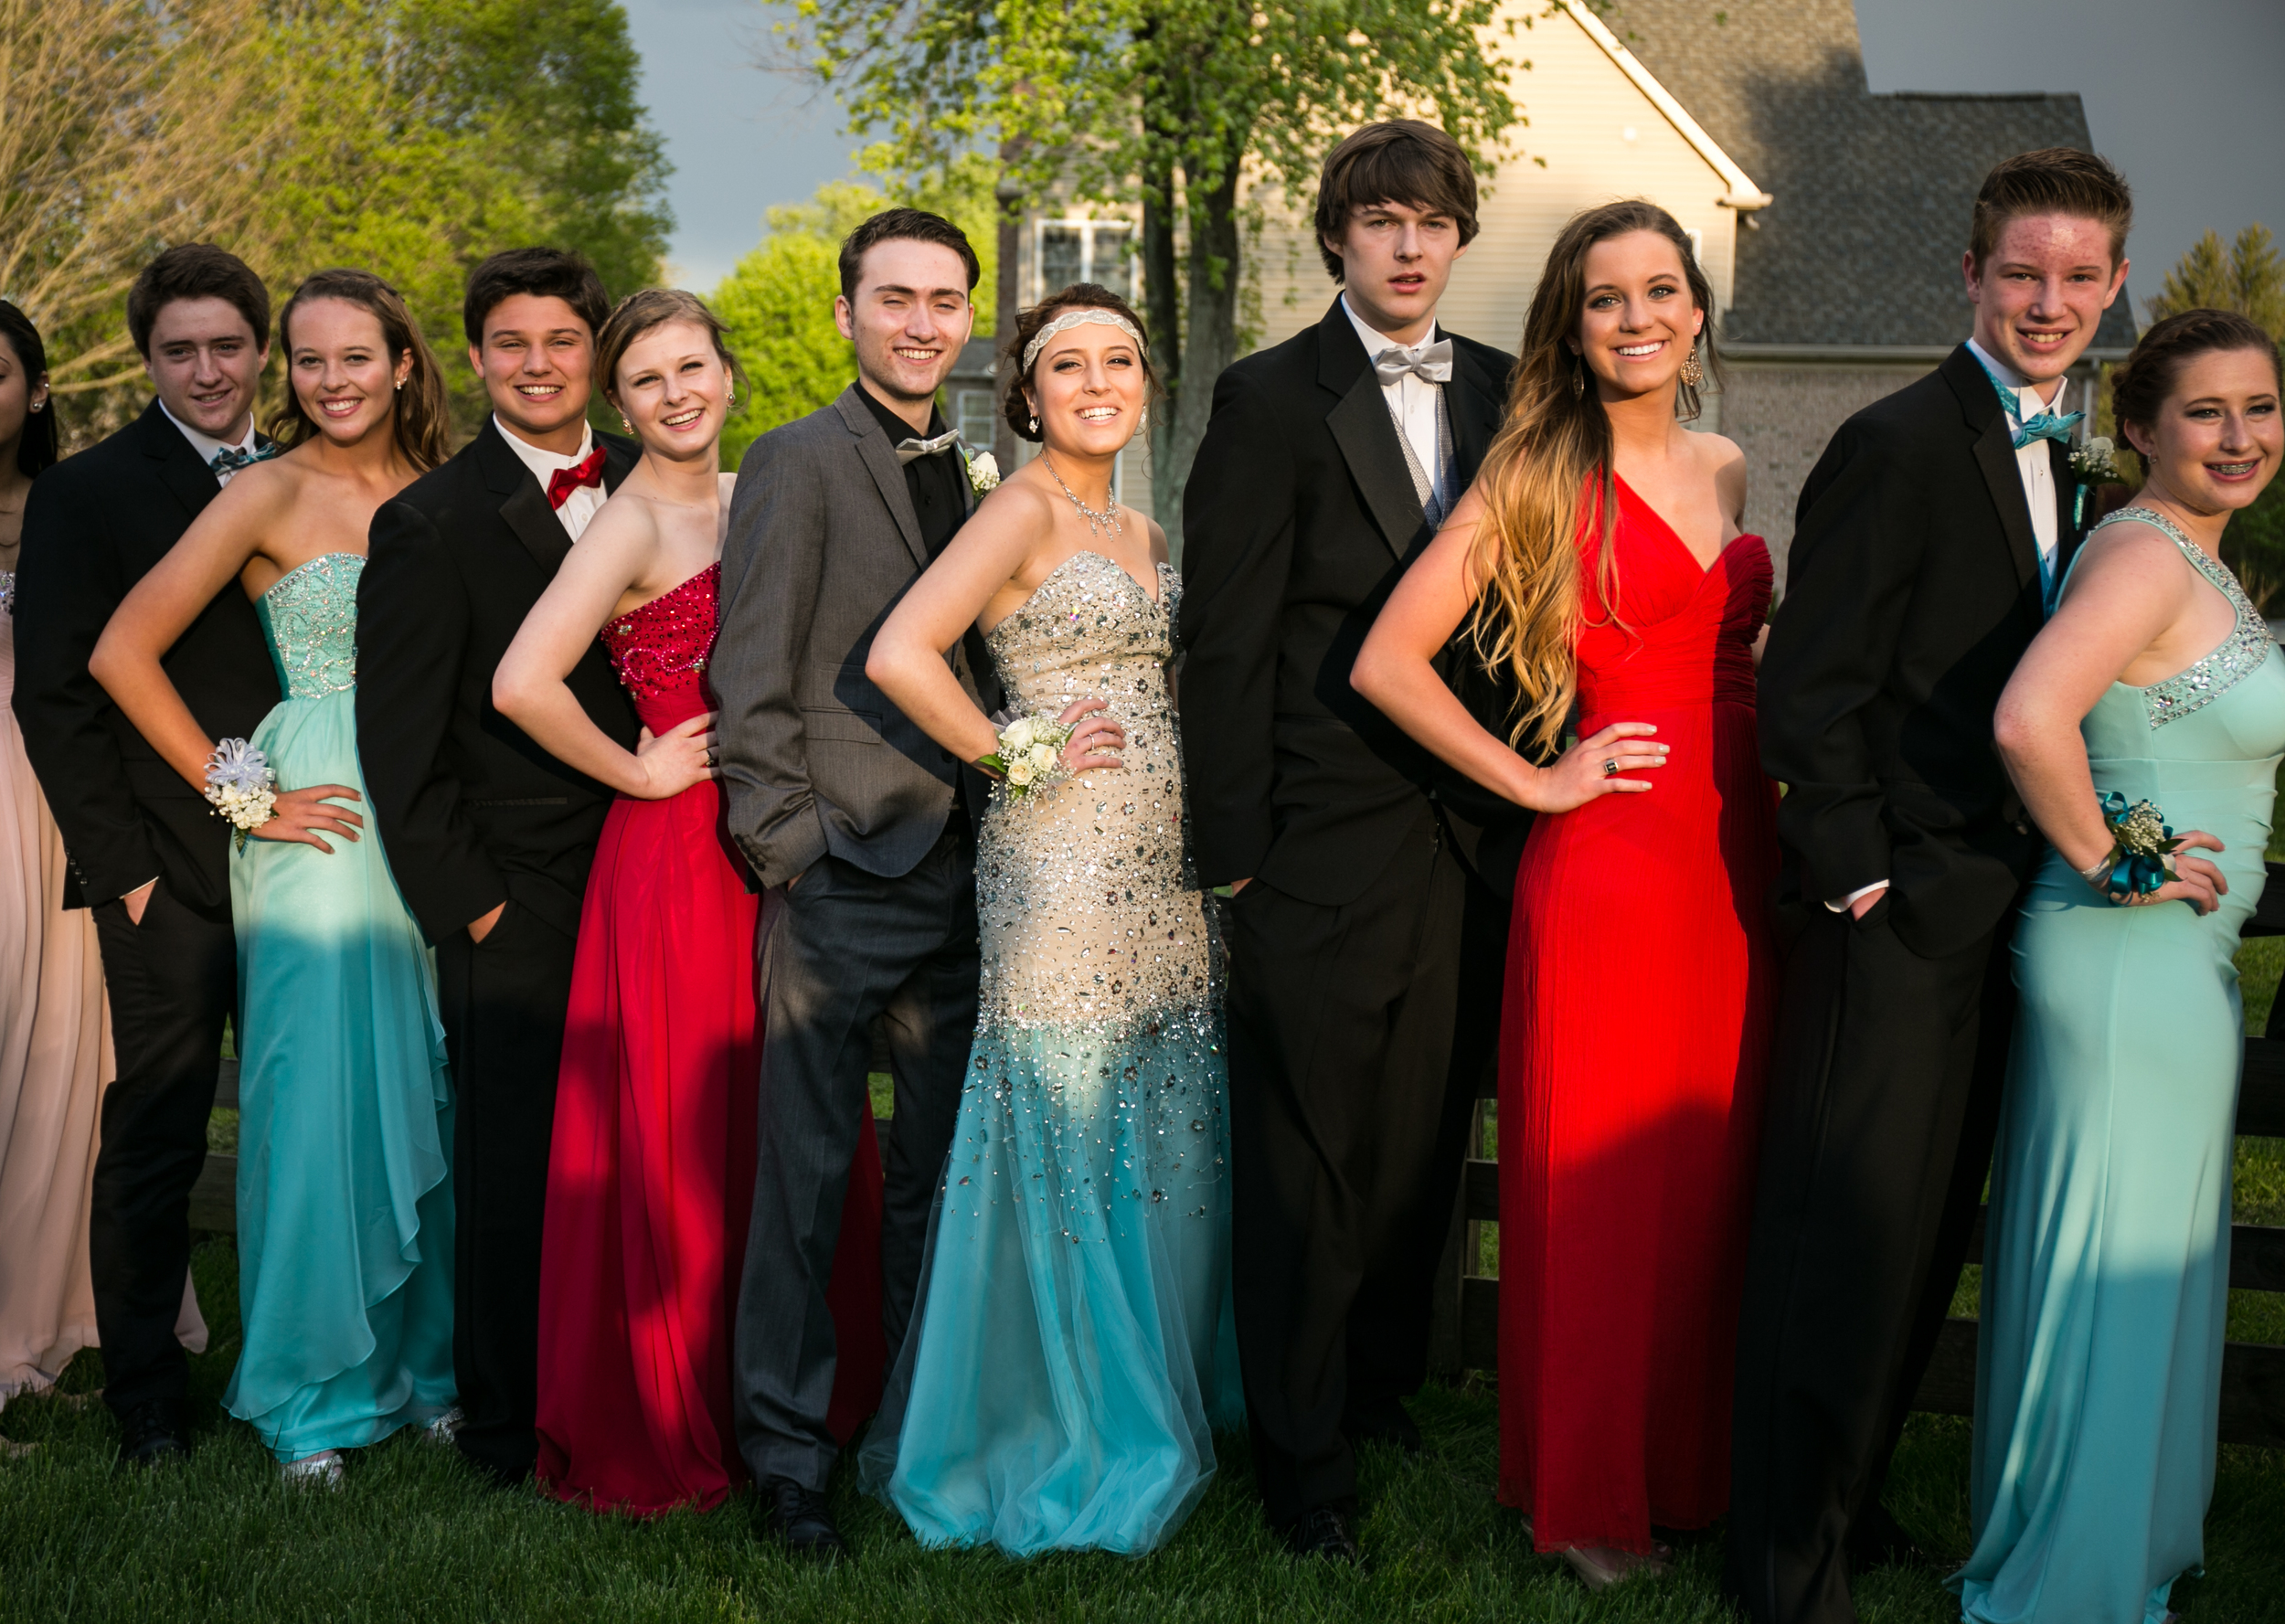 Mount-De-Sales-Pre-Prom-May-2014-49.jpg